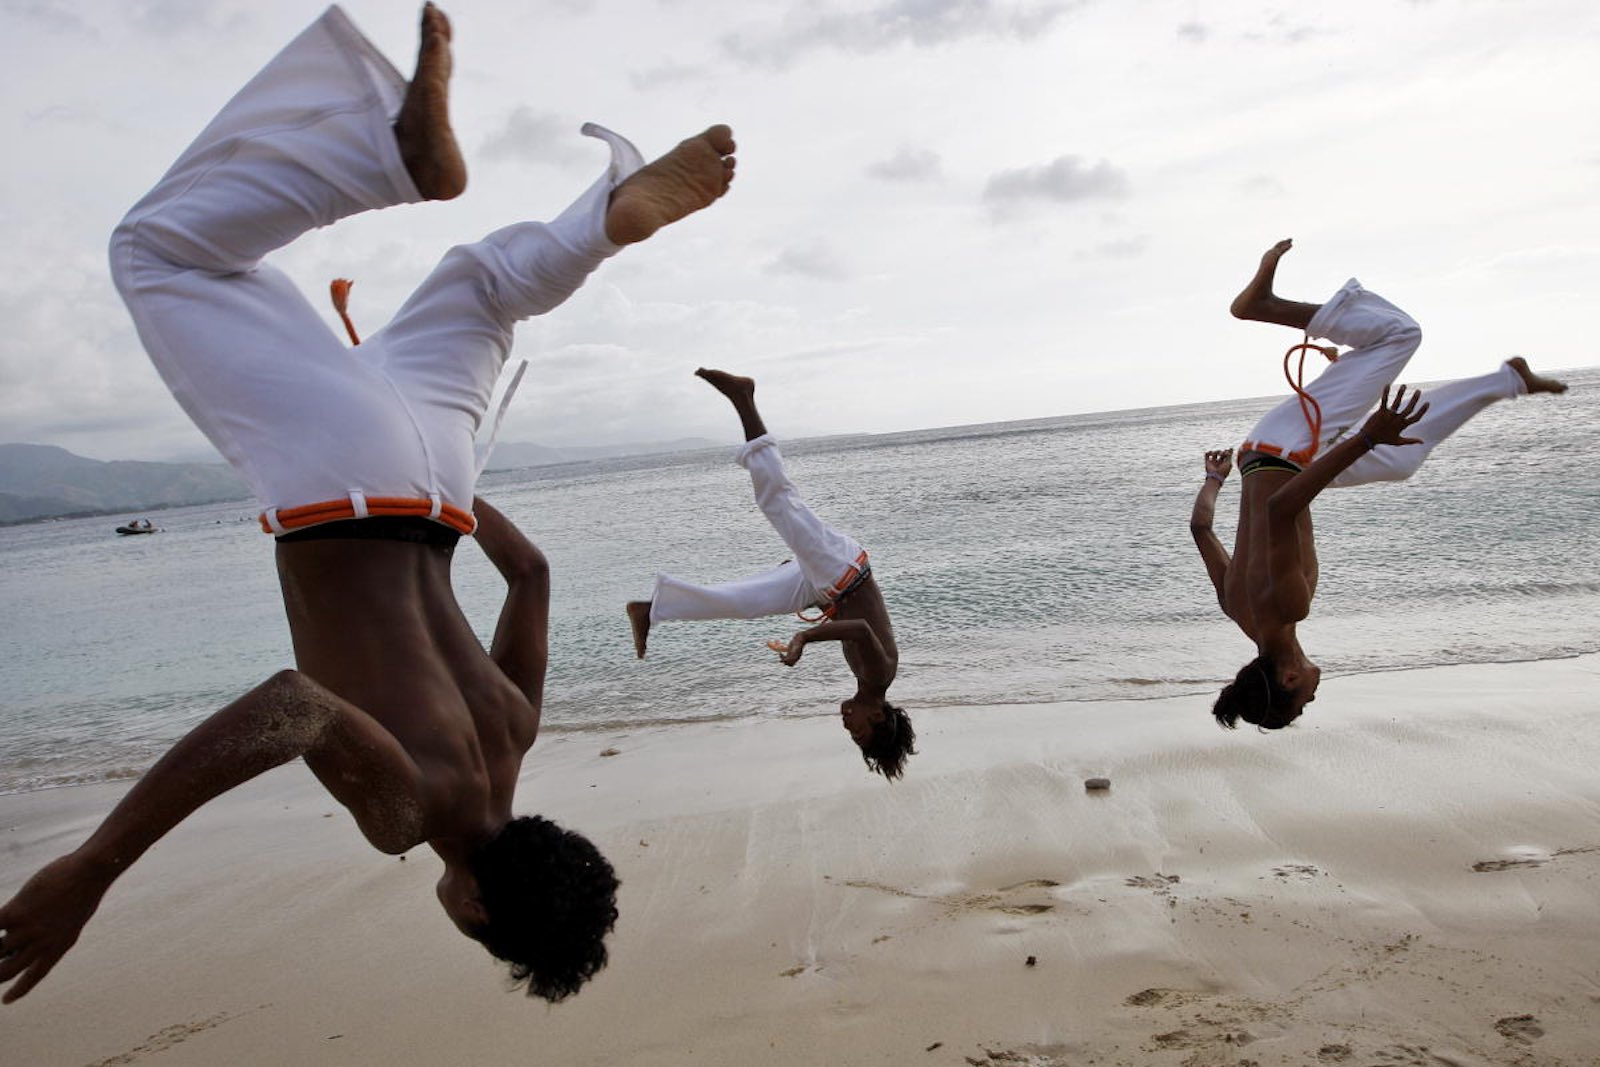 Practising capoeira on a Dili beach (United Nations Photo/Flickr)